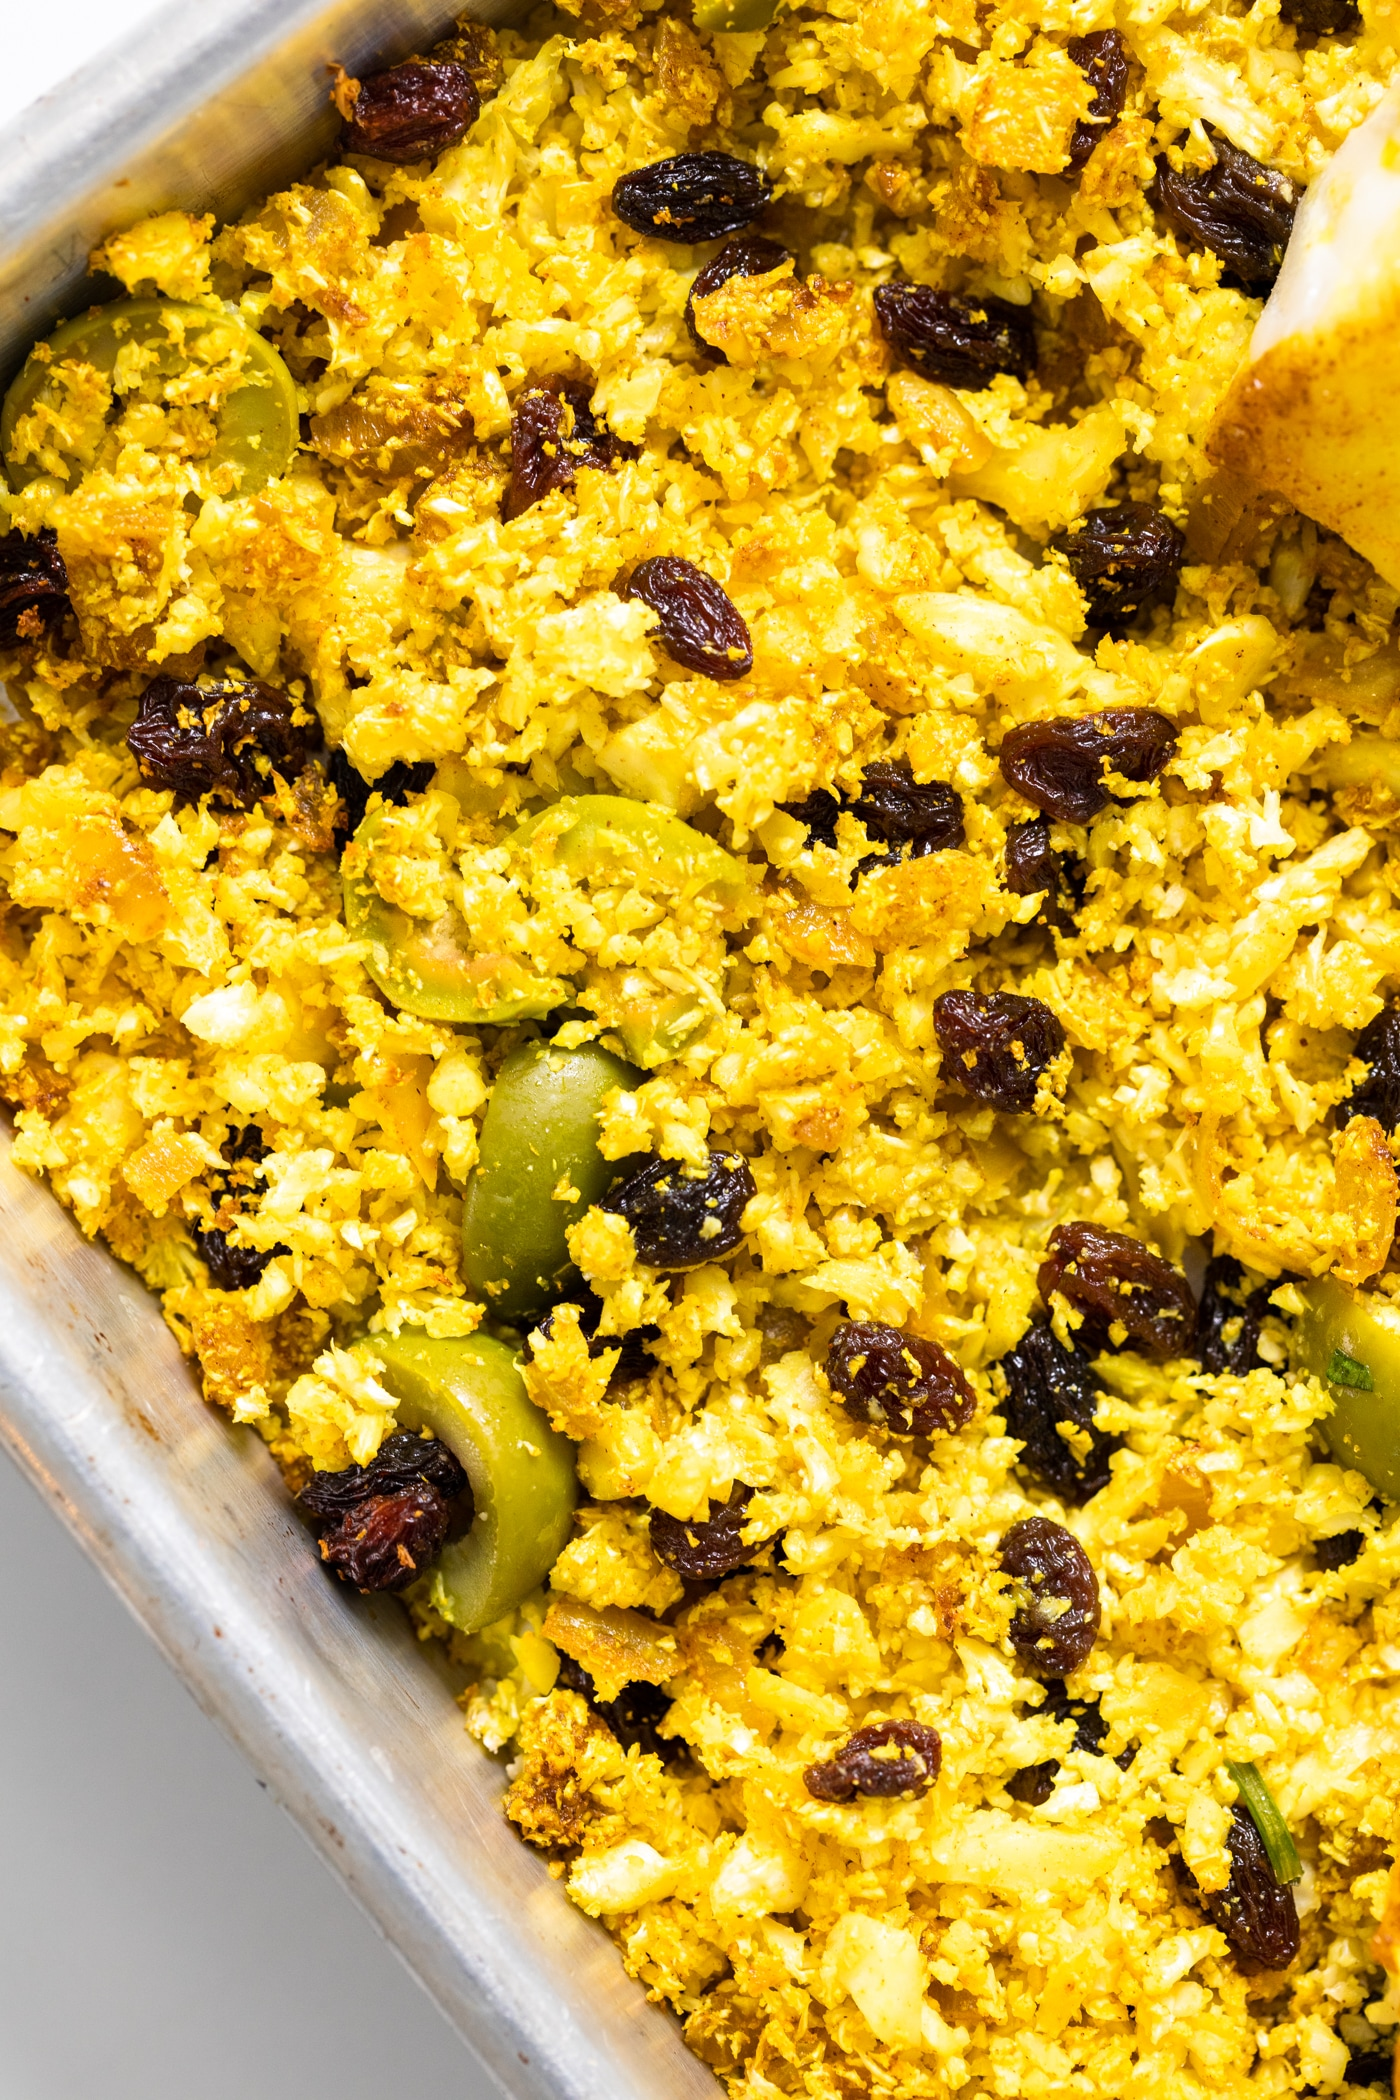 Top down view of yellow colored cauliflower rice with pieces of olives and raisins mixed amongst all on sheet pan